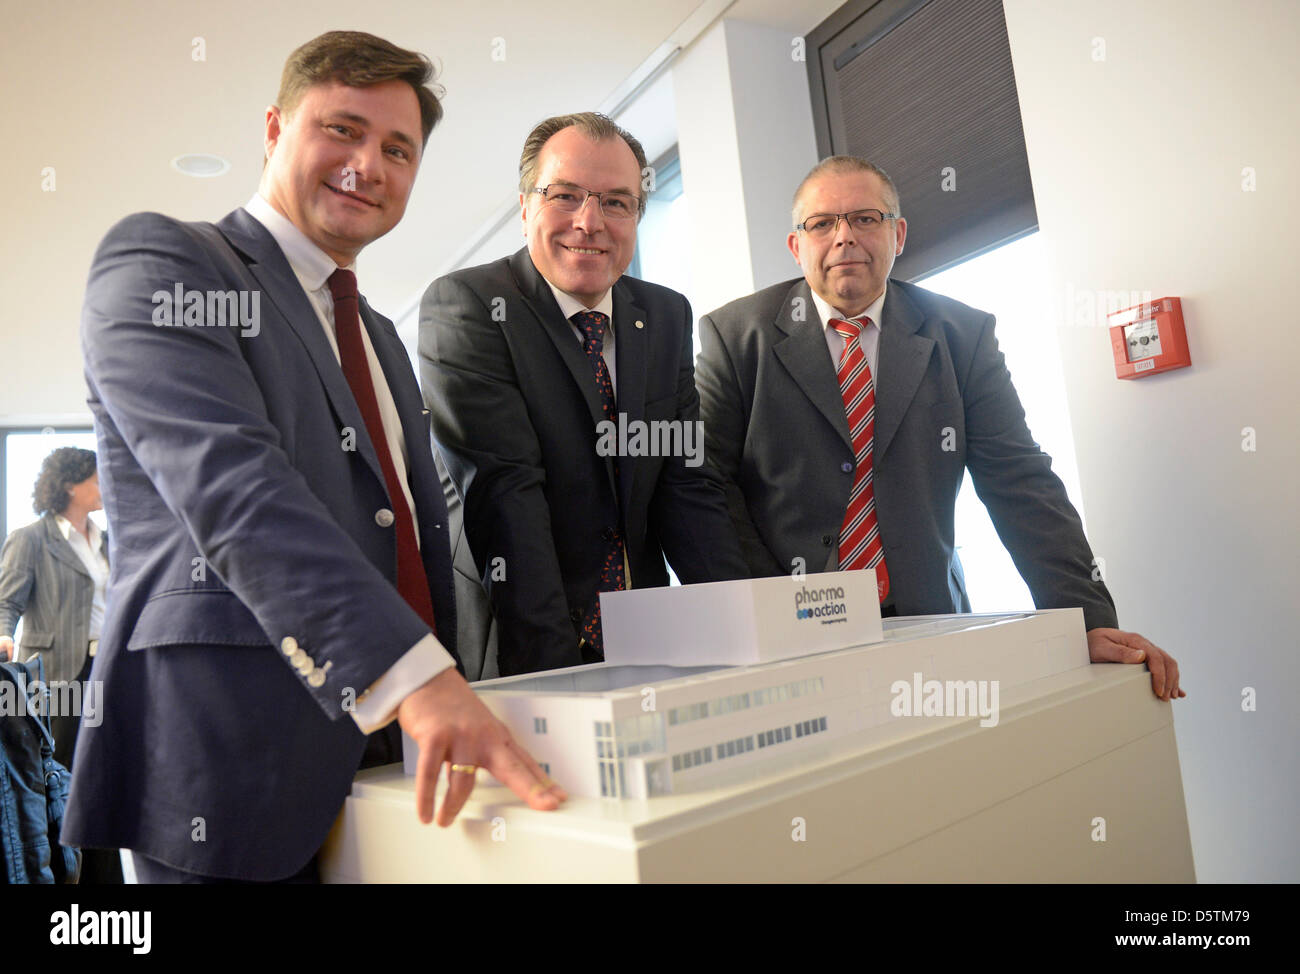 Erol Thomas Isim, CEO of Toennies subsidiary Pharma Action, chairman of the meat producer Toennies, Clemens Toennies, - Stock Image